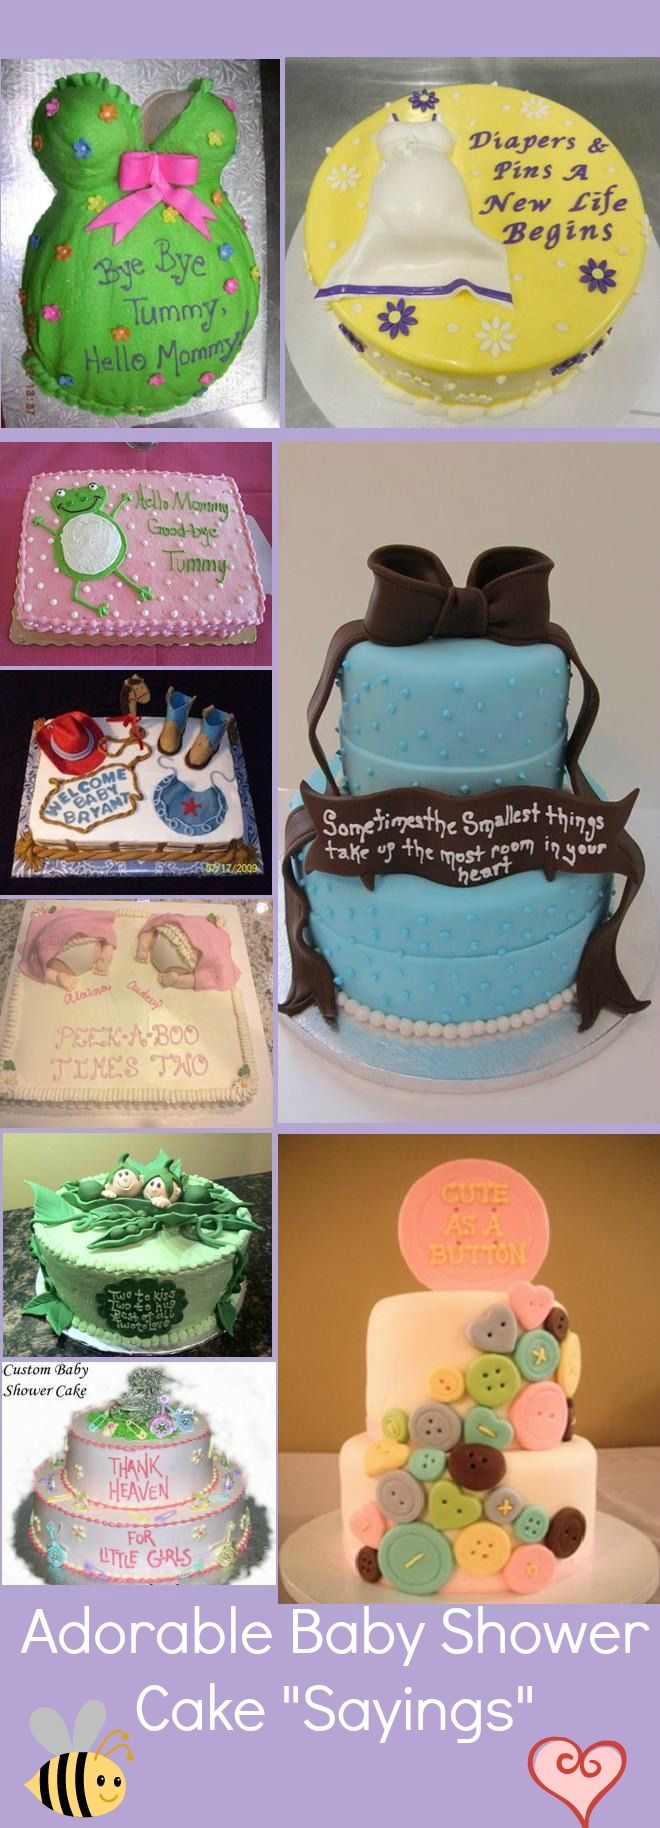 10 Adorable Baby Shower Cake Ideas. Great If You Need A Catchy Baby Shower  Saying